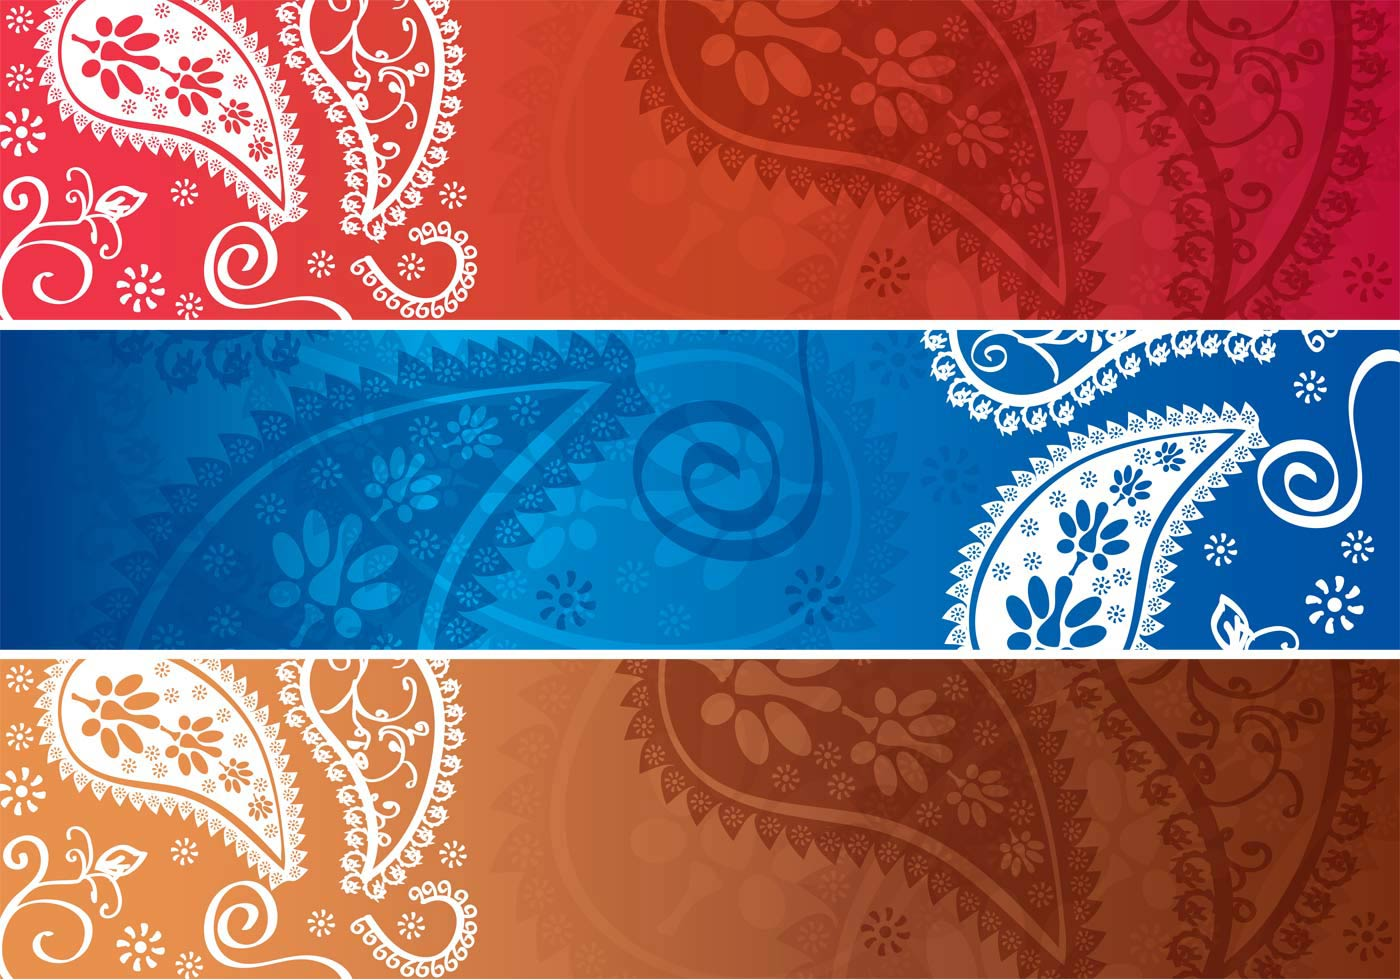 Paisley Design Horizontal Banner Vectors - Download Free ...